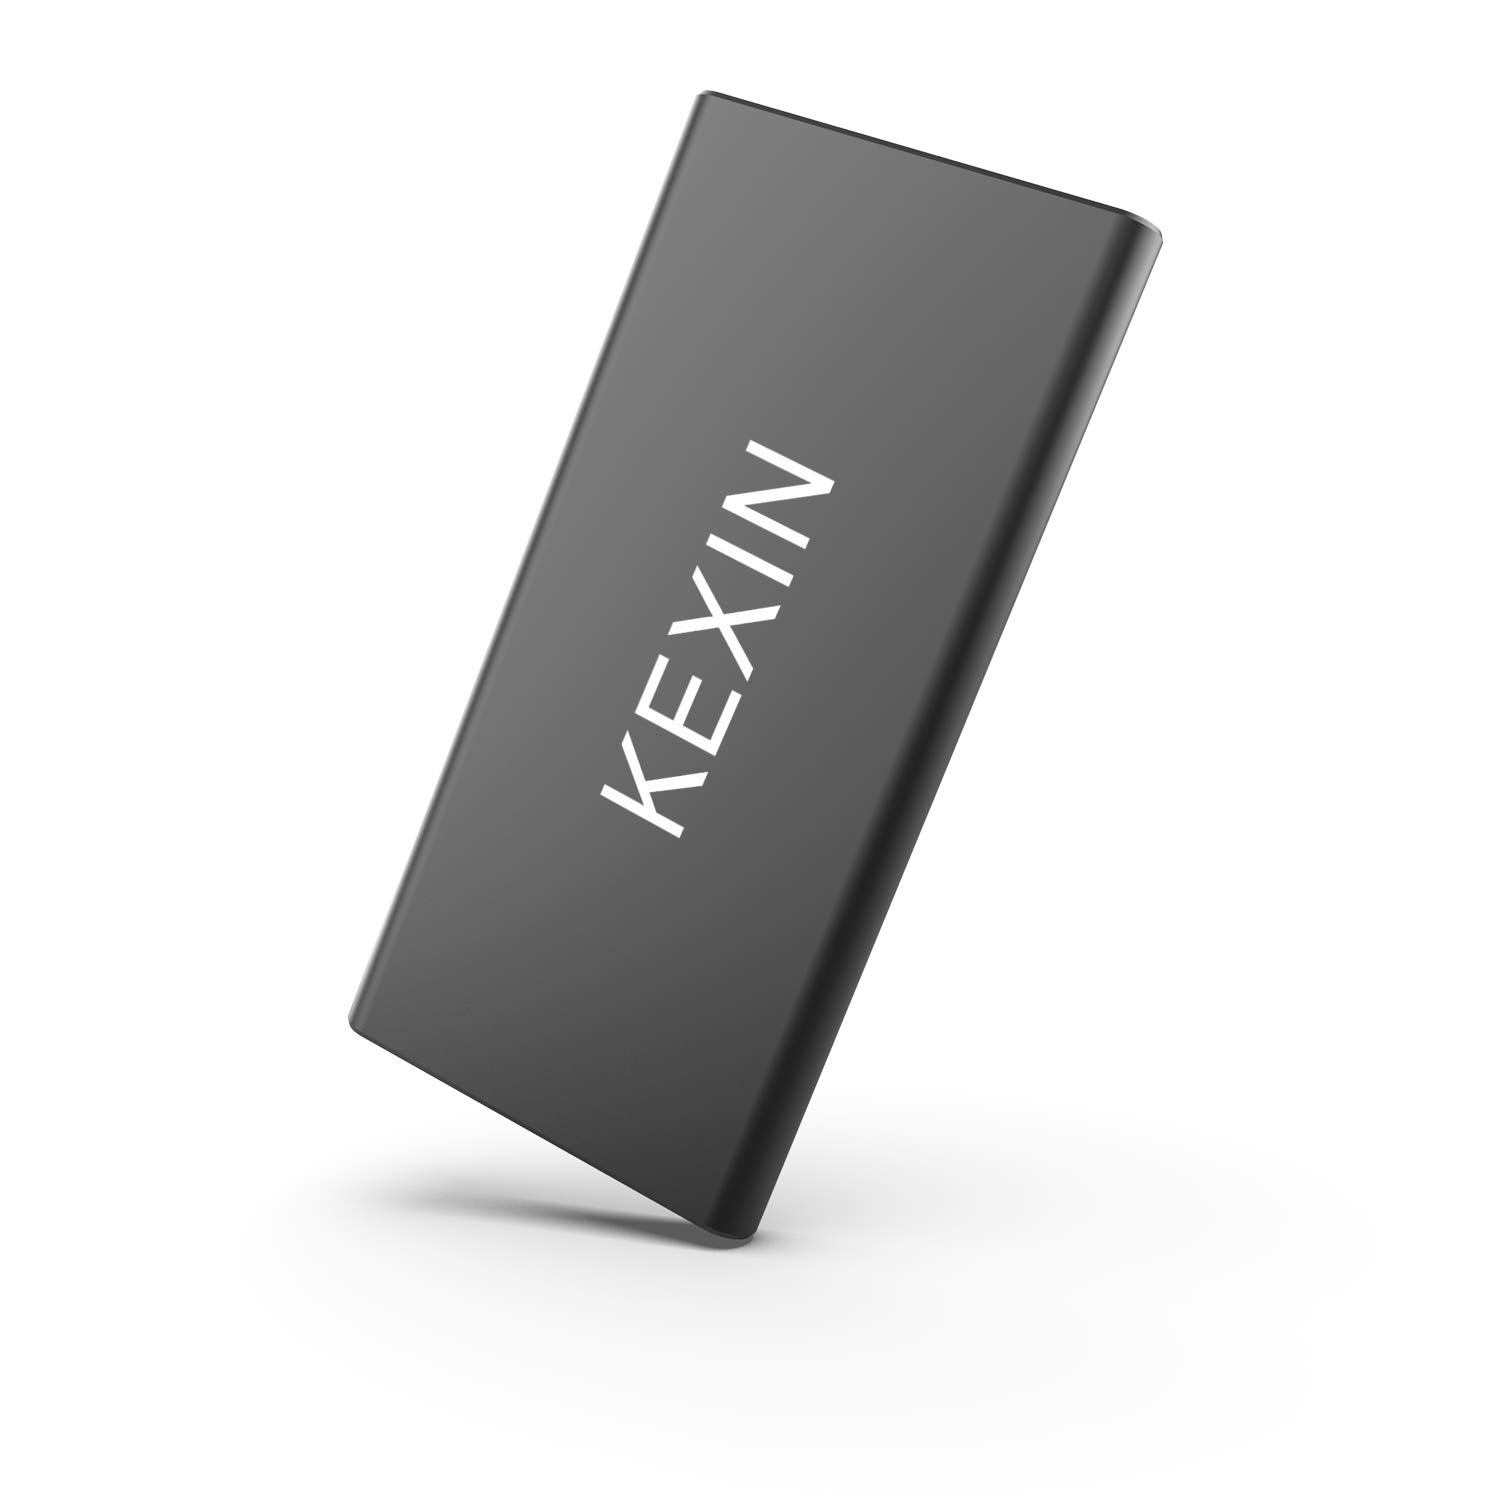 KEXIN 250GB Portable External SSD Drive USB 3.0 High Speed Read & Write up to 400MB/s & 300MB/s External Storage Ultra-Slim Solid State Drive for PC, Desktop, Laptop, MacBook Black by KEXIN (Image #1)